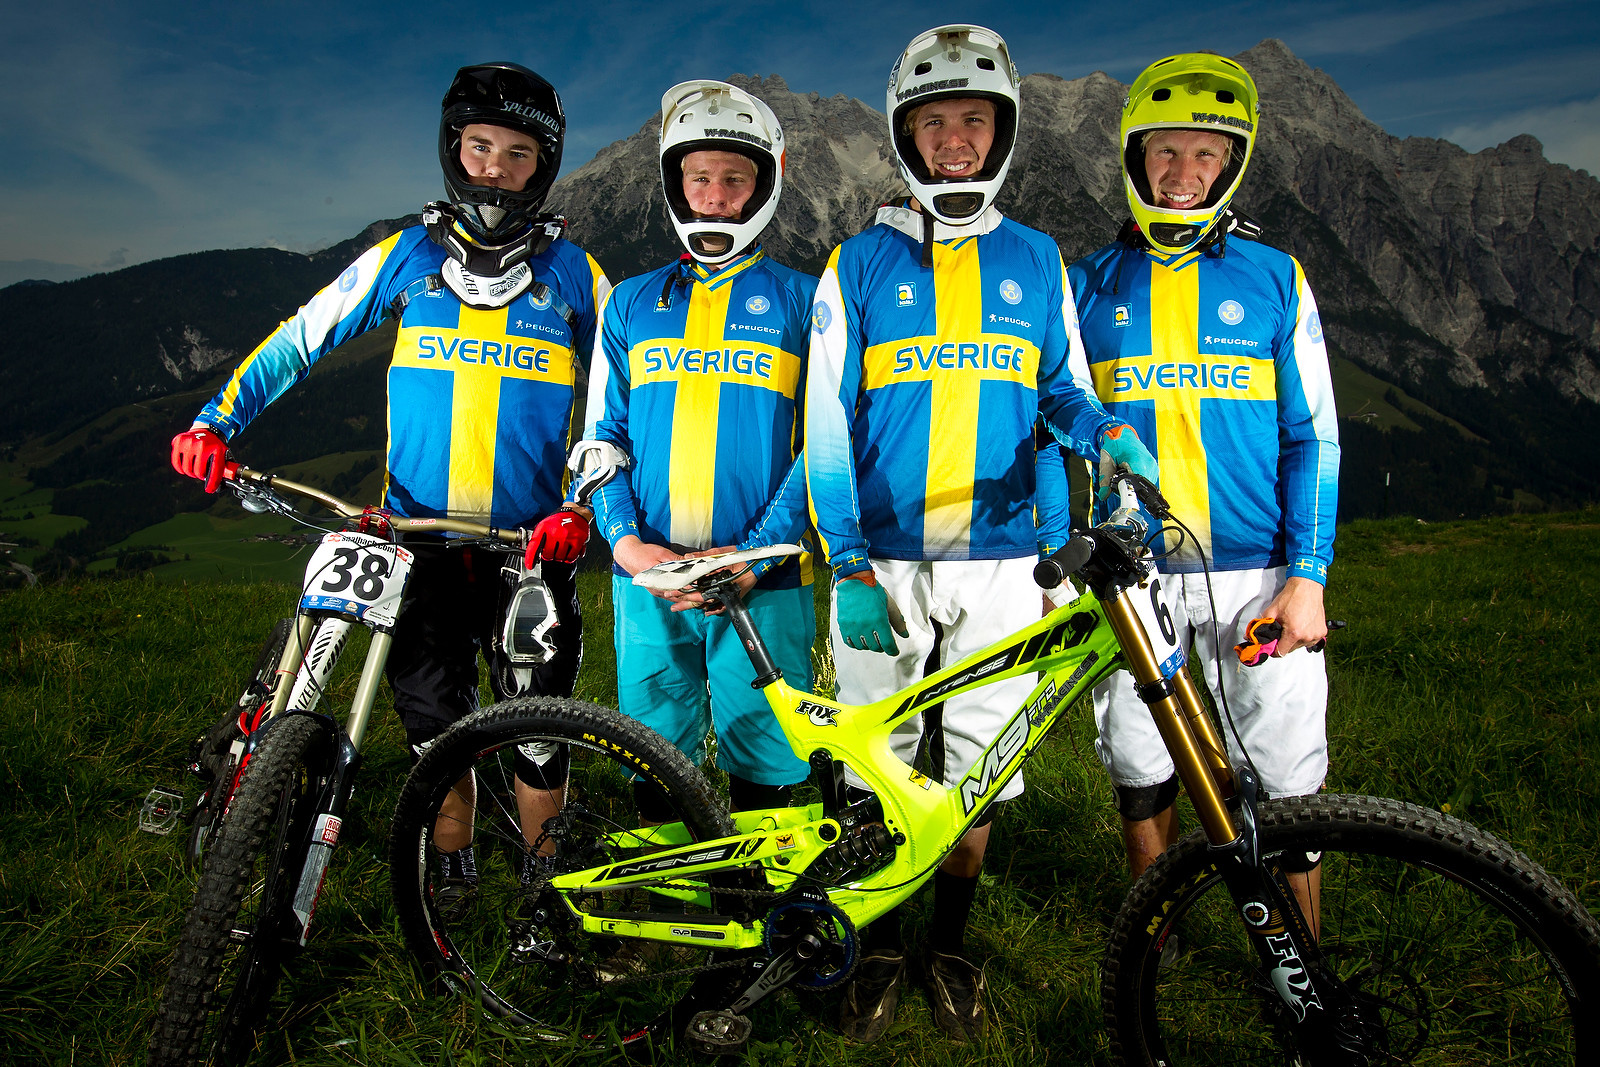 Team Blonde - World Championships Riders and Bikes - Mountain Biking Pictures - Vital MTB